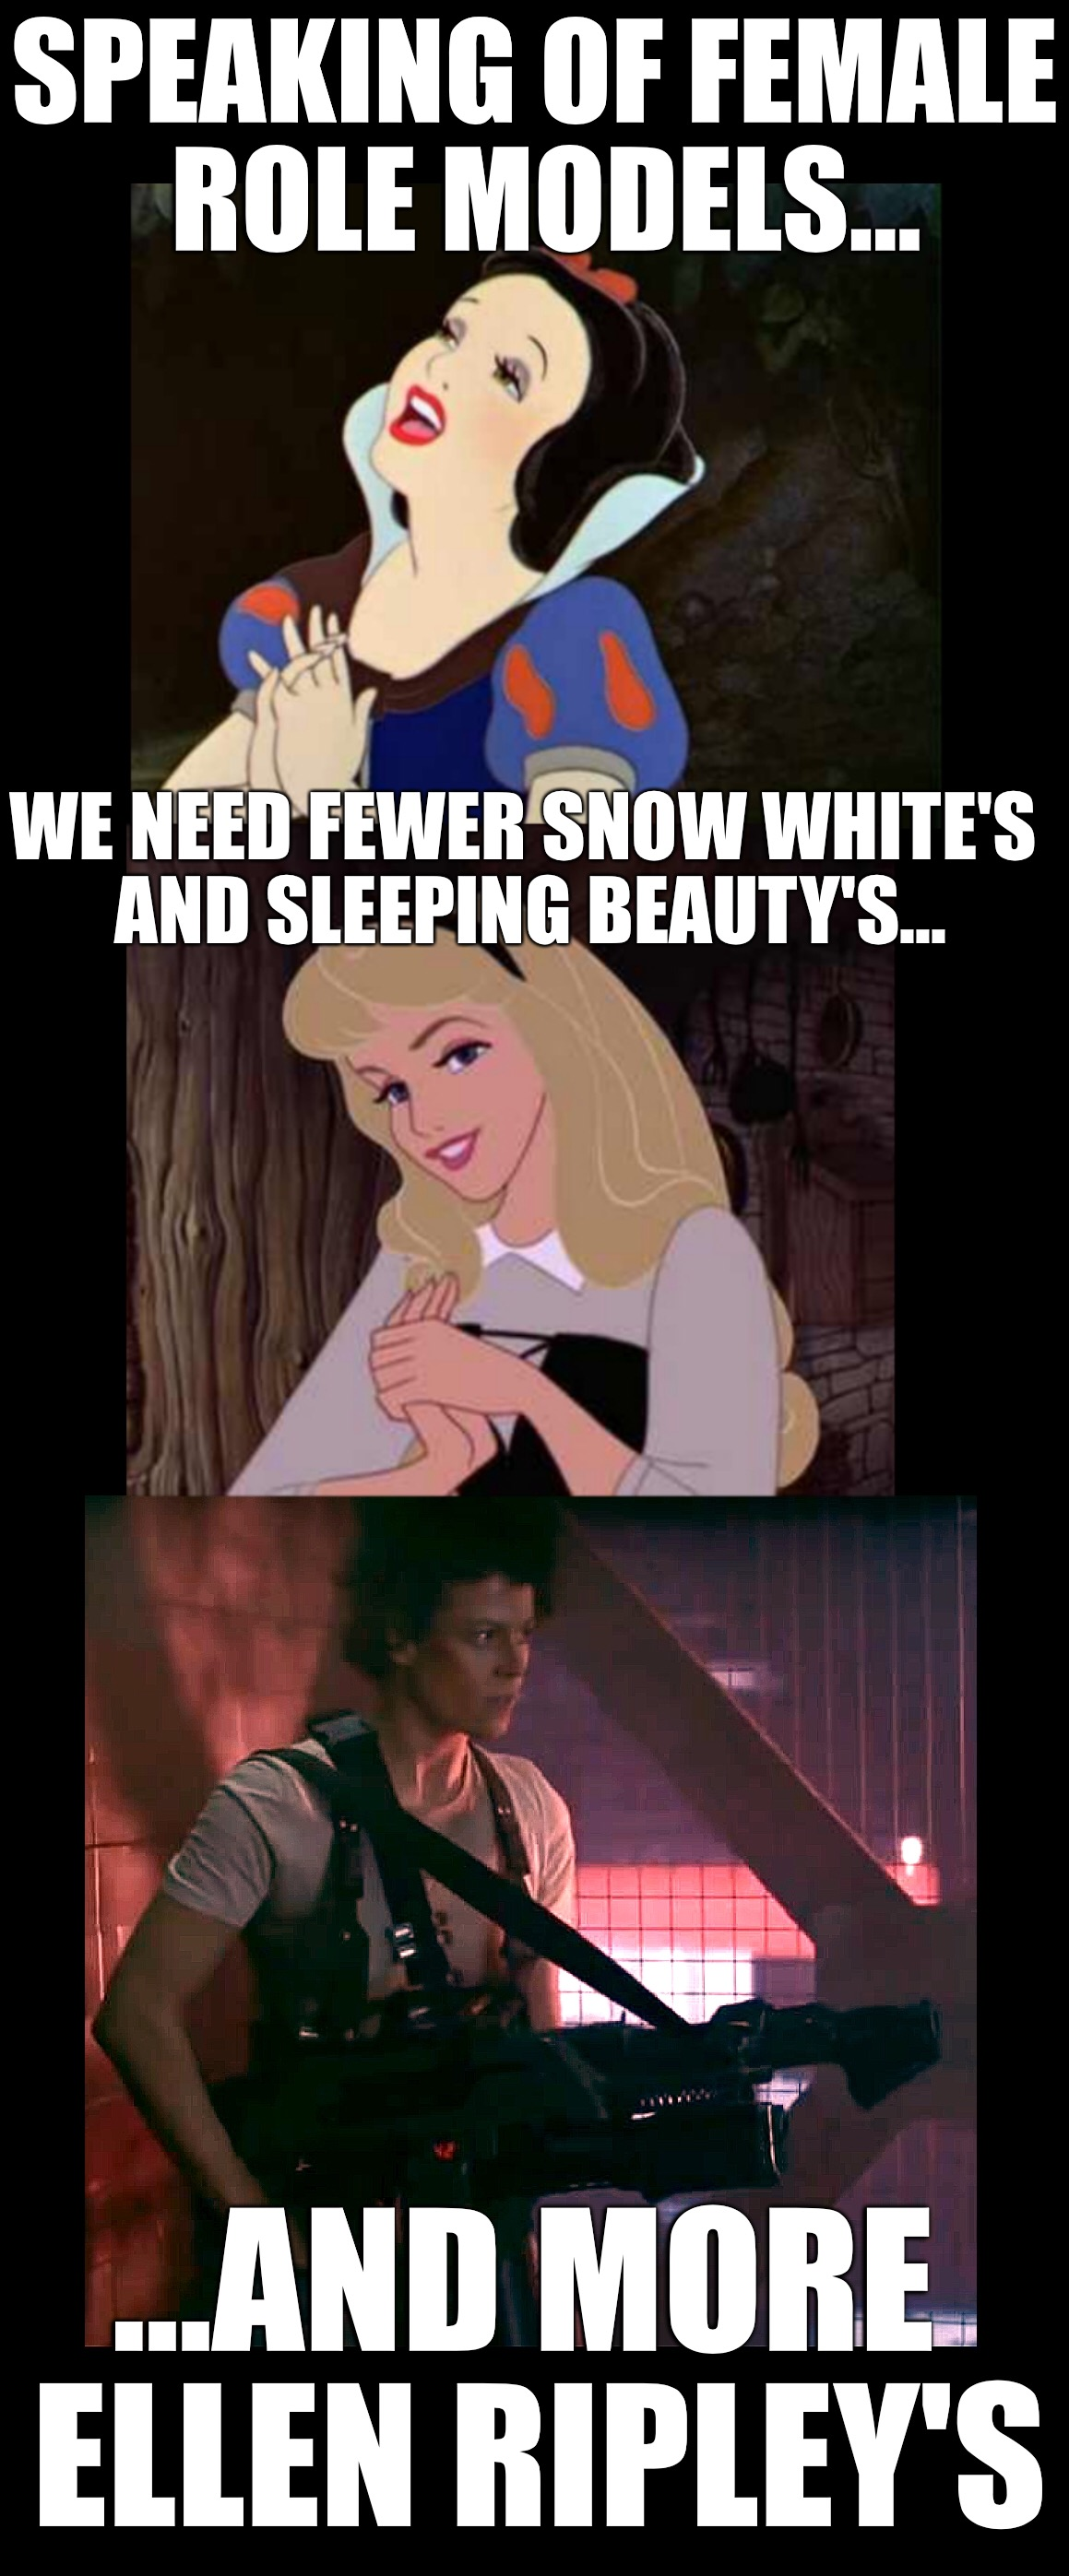 Modern female role models | SPEAKING OF FEMALE ROLE MODELS... WE NEED FEWER SNOW WHITE'S AND SLEEPING BEAUTY'S... ...AND MORE ELLEN RIPLEY'S | image tagged in ripley,aliens,snow white,sleeping beauty,female,role model | made w/ Imgflip meme maker